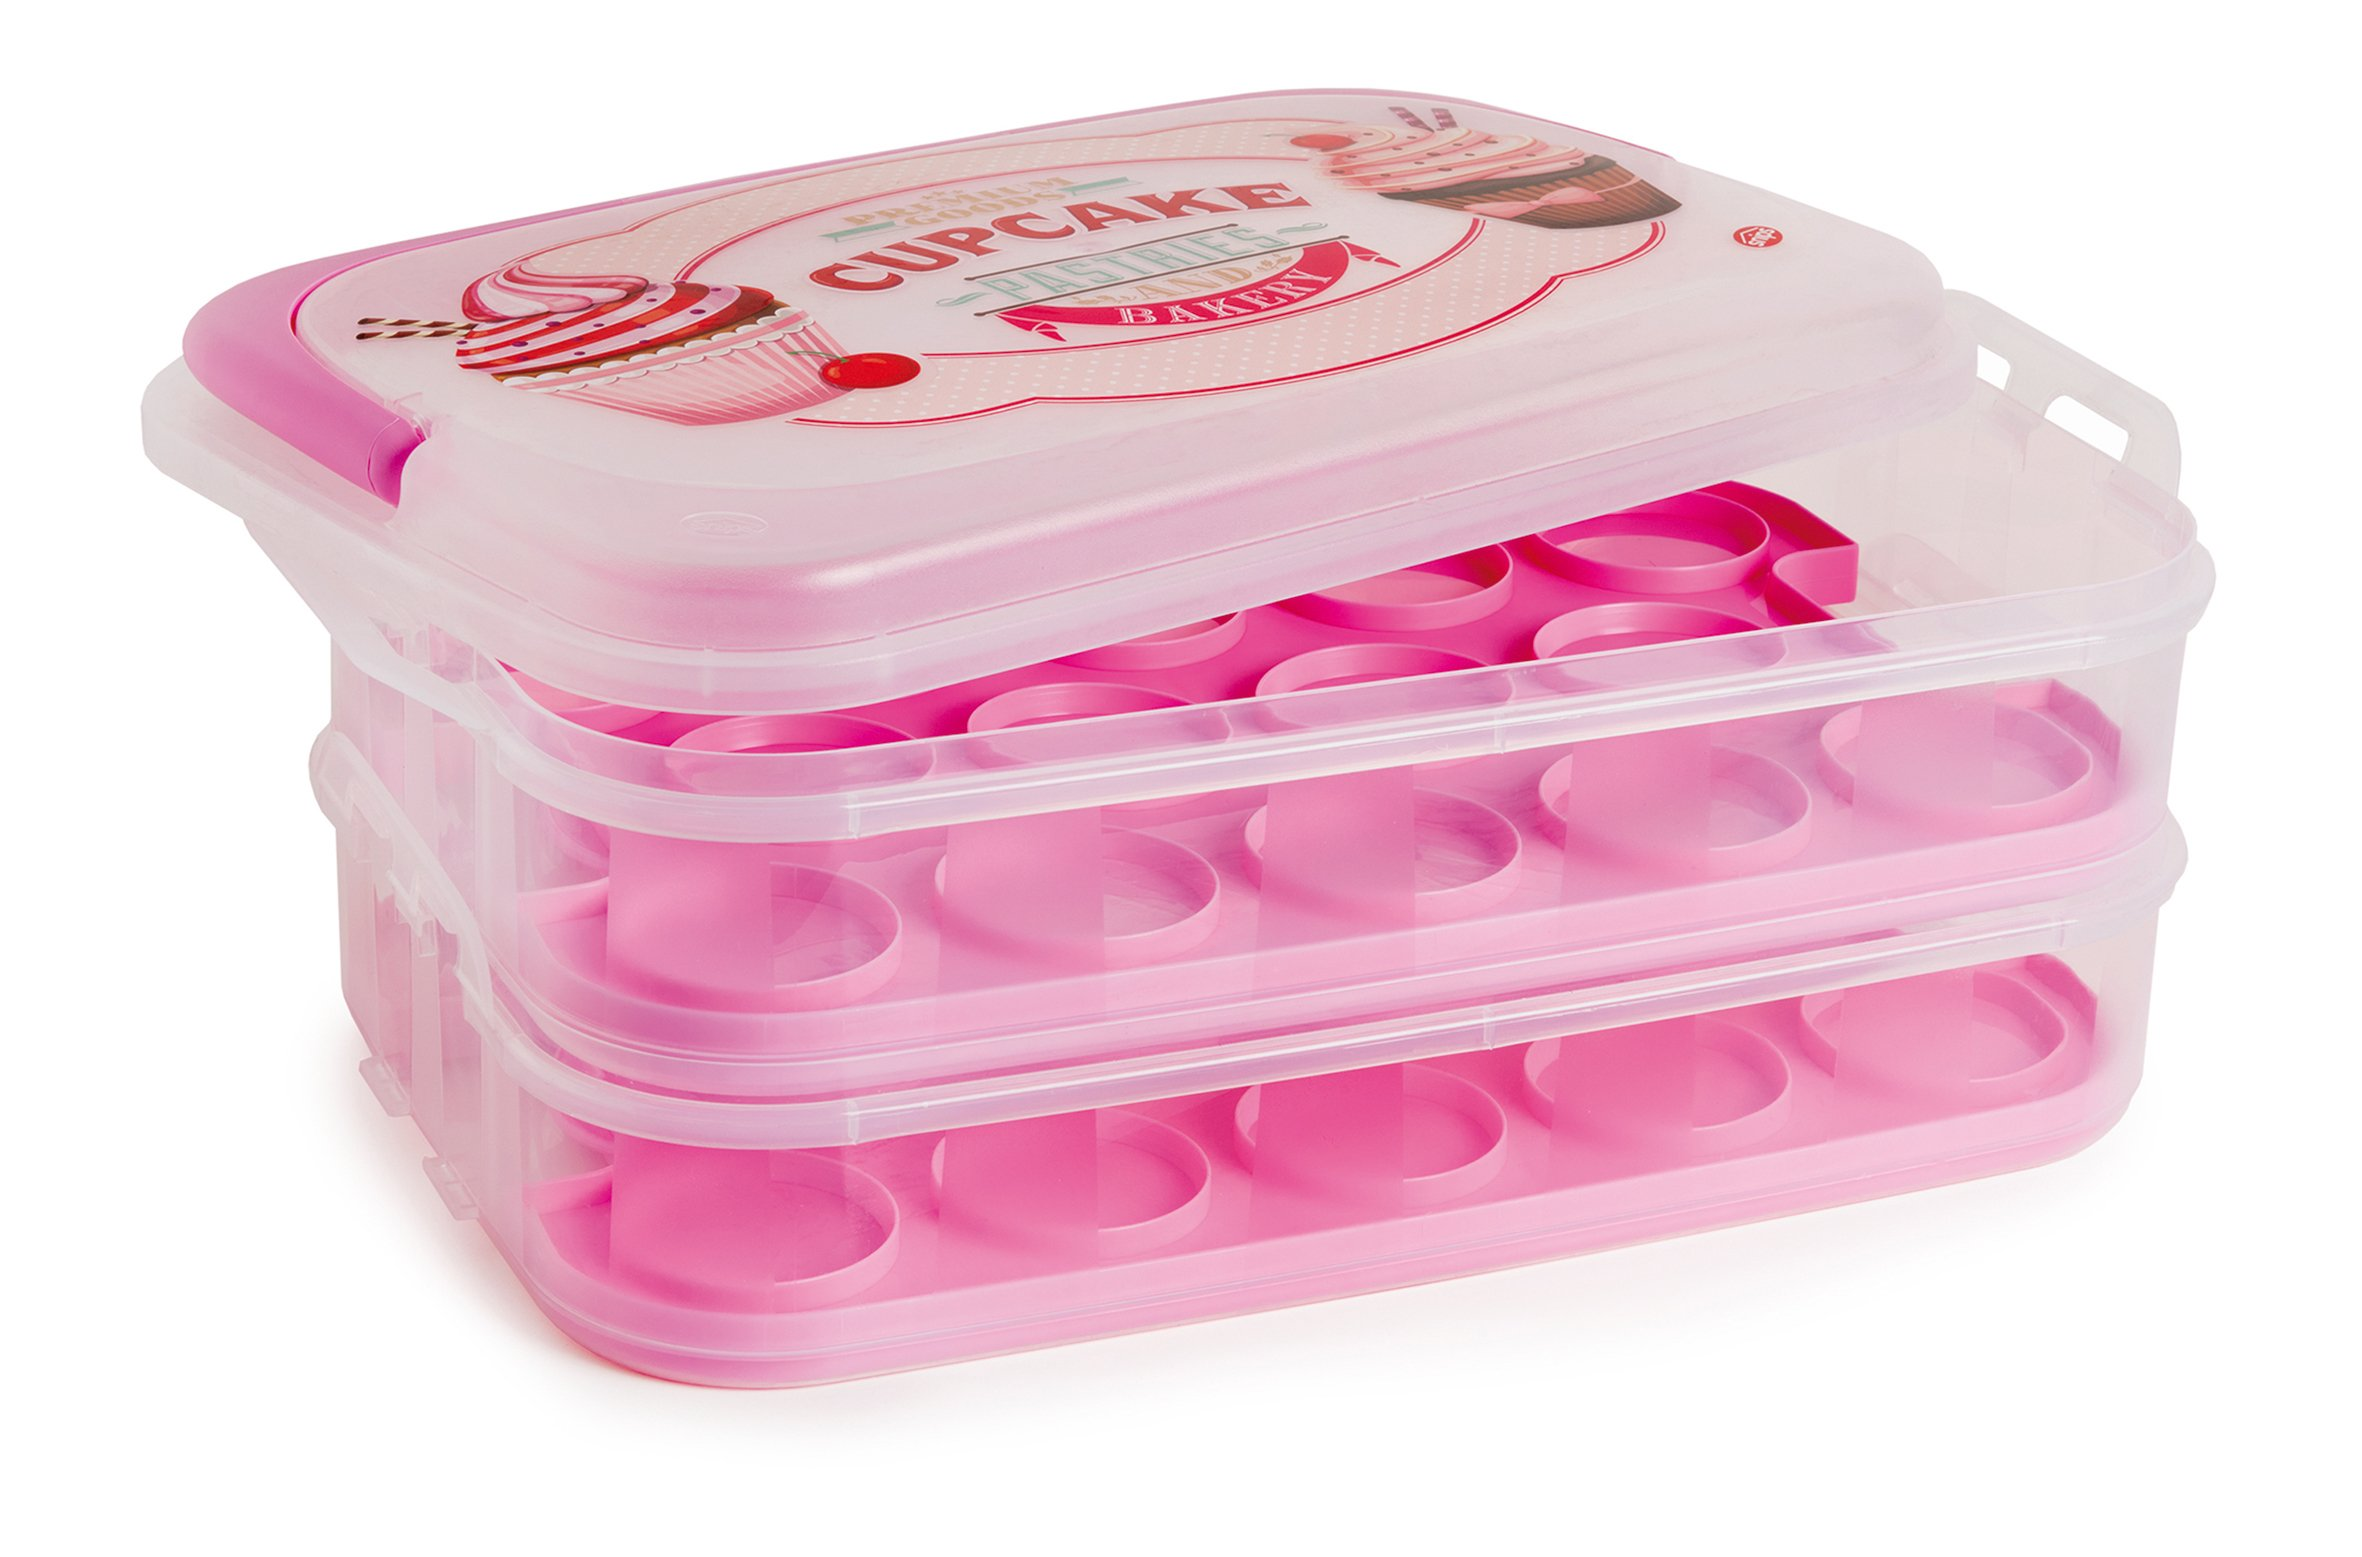 Snips 2 Tier Cupcake Holder (Holds 28 cupcakes), Pink by Snips